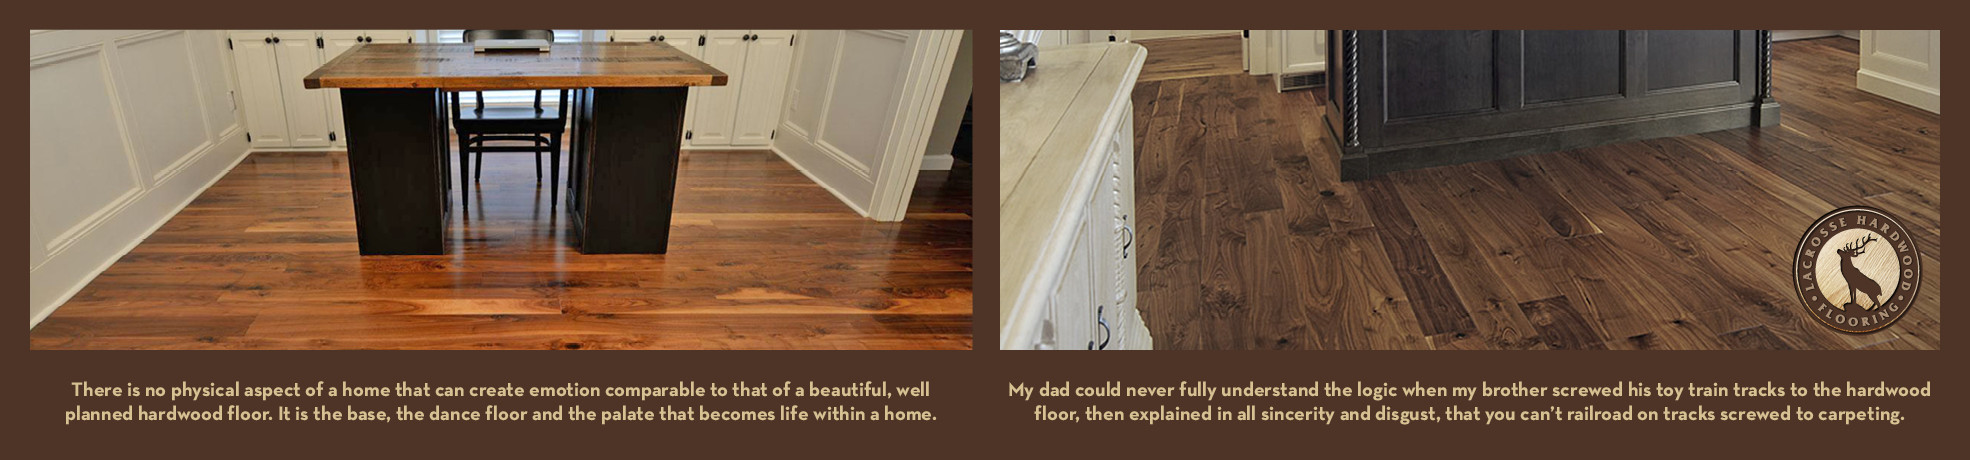 how much does labor cost to install hardwood floors of lacrosse hardwood flooring walnut white oak red oak hickory throughout lhfsliderv22